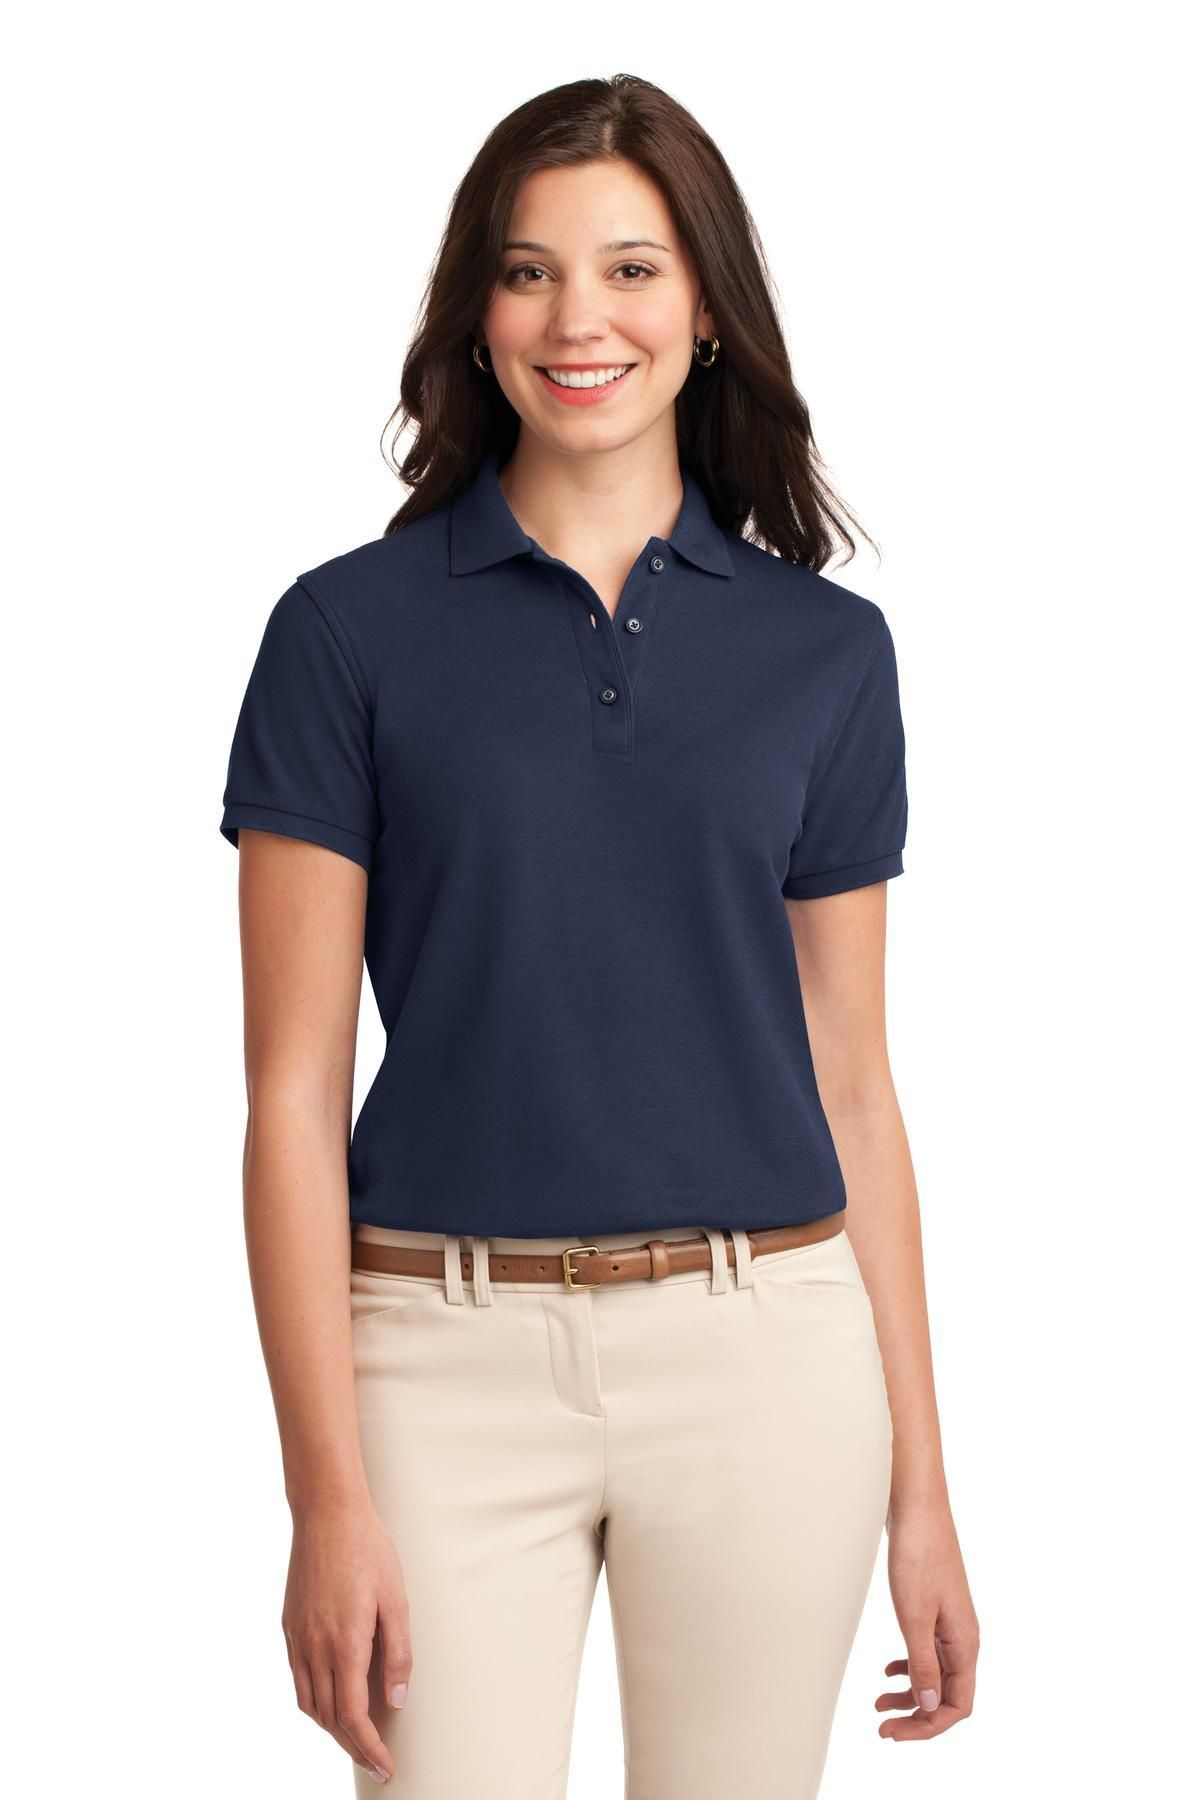 db3a0d3c70f706 Navy Silk Shirt Ladies – EDGE Engineering and Consulting Limited